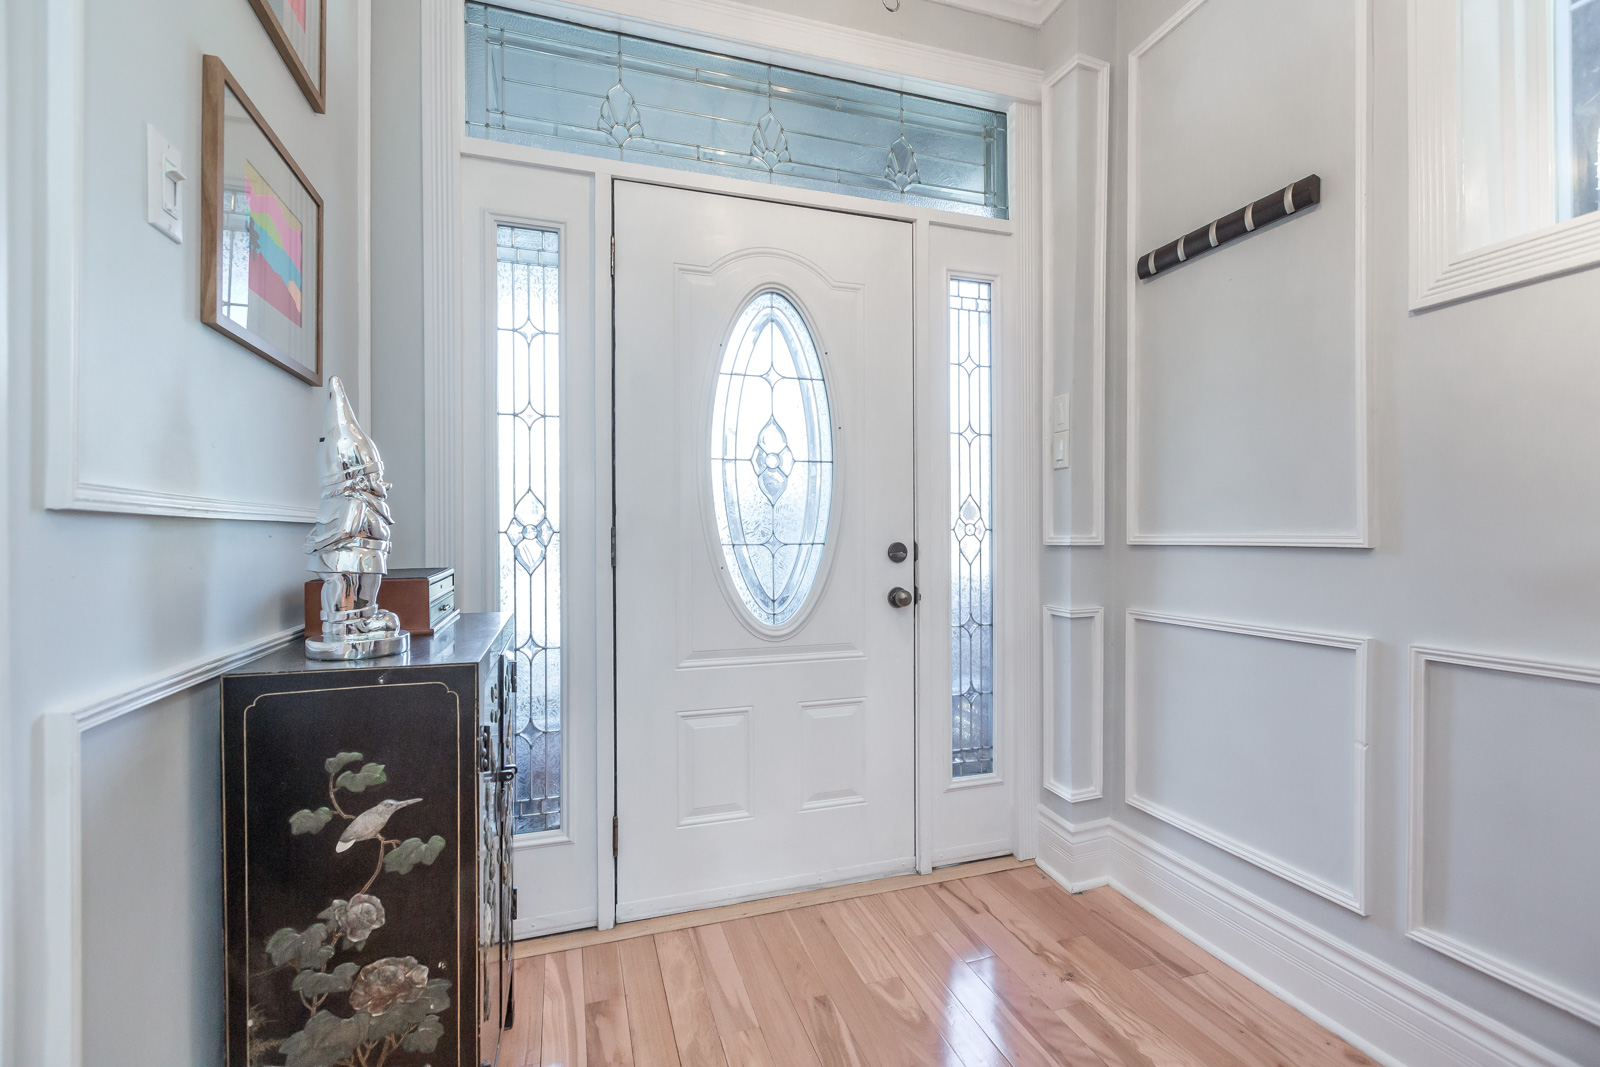 Entry way with beautiful mouldings